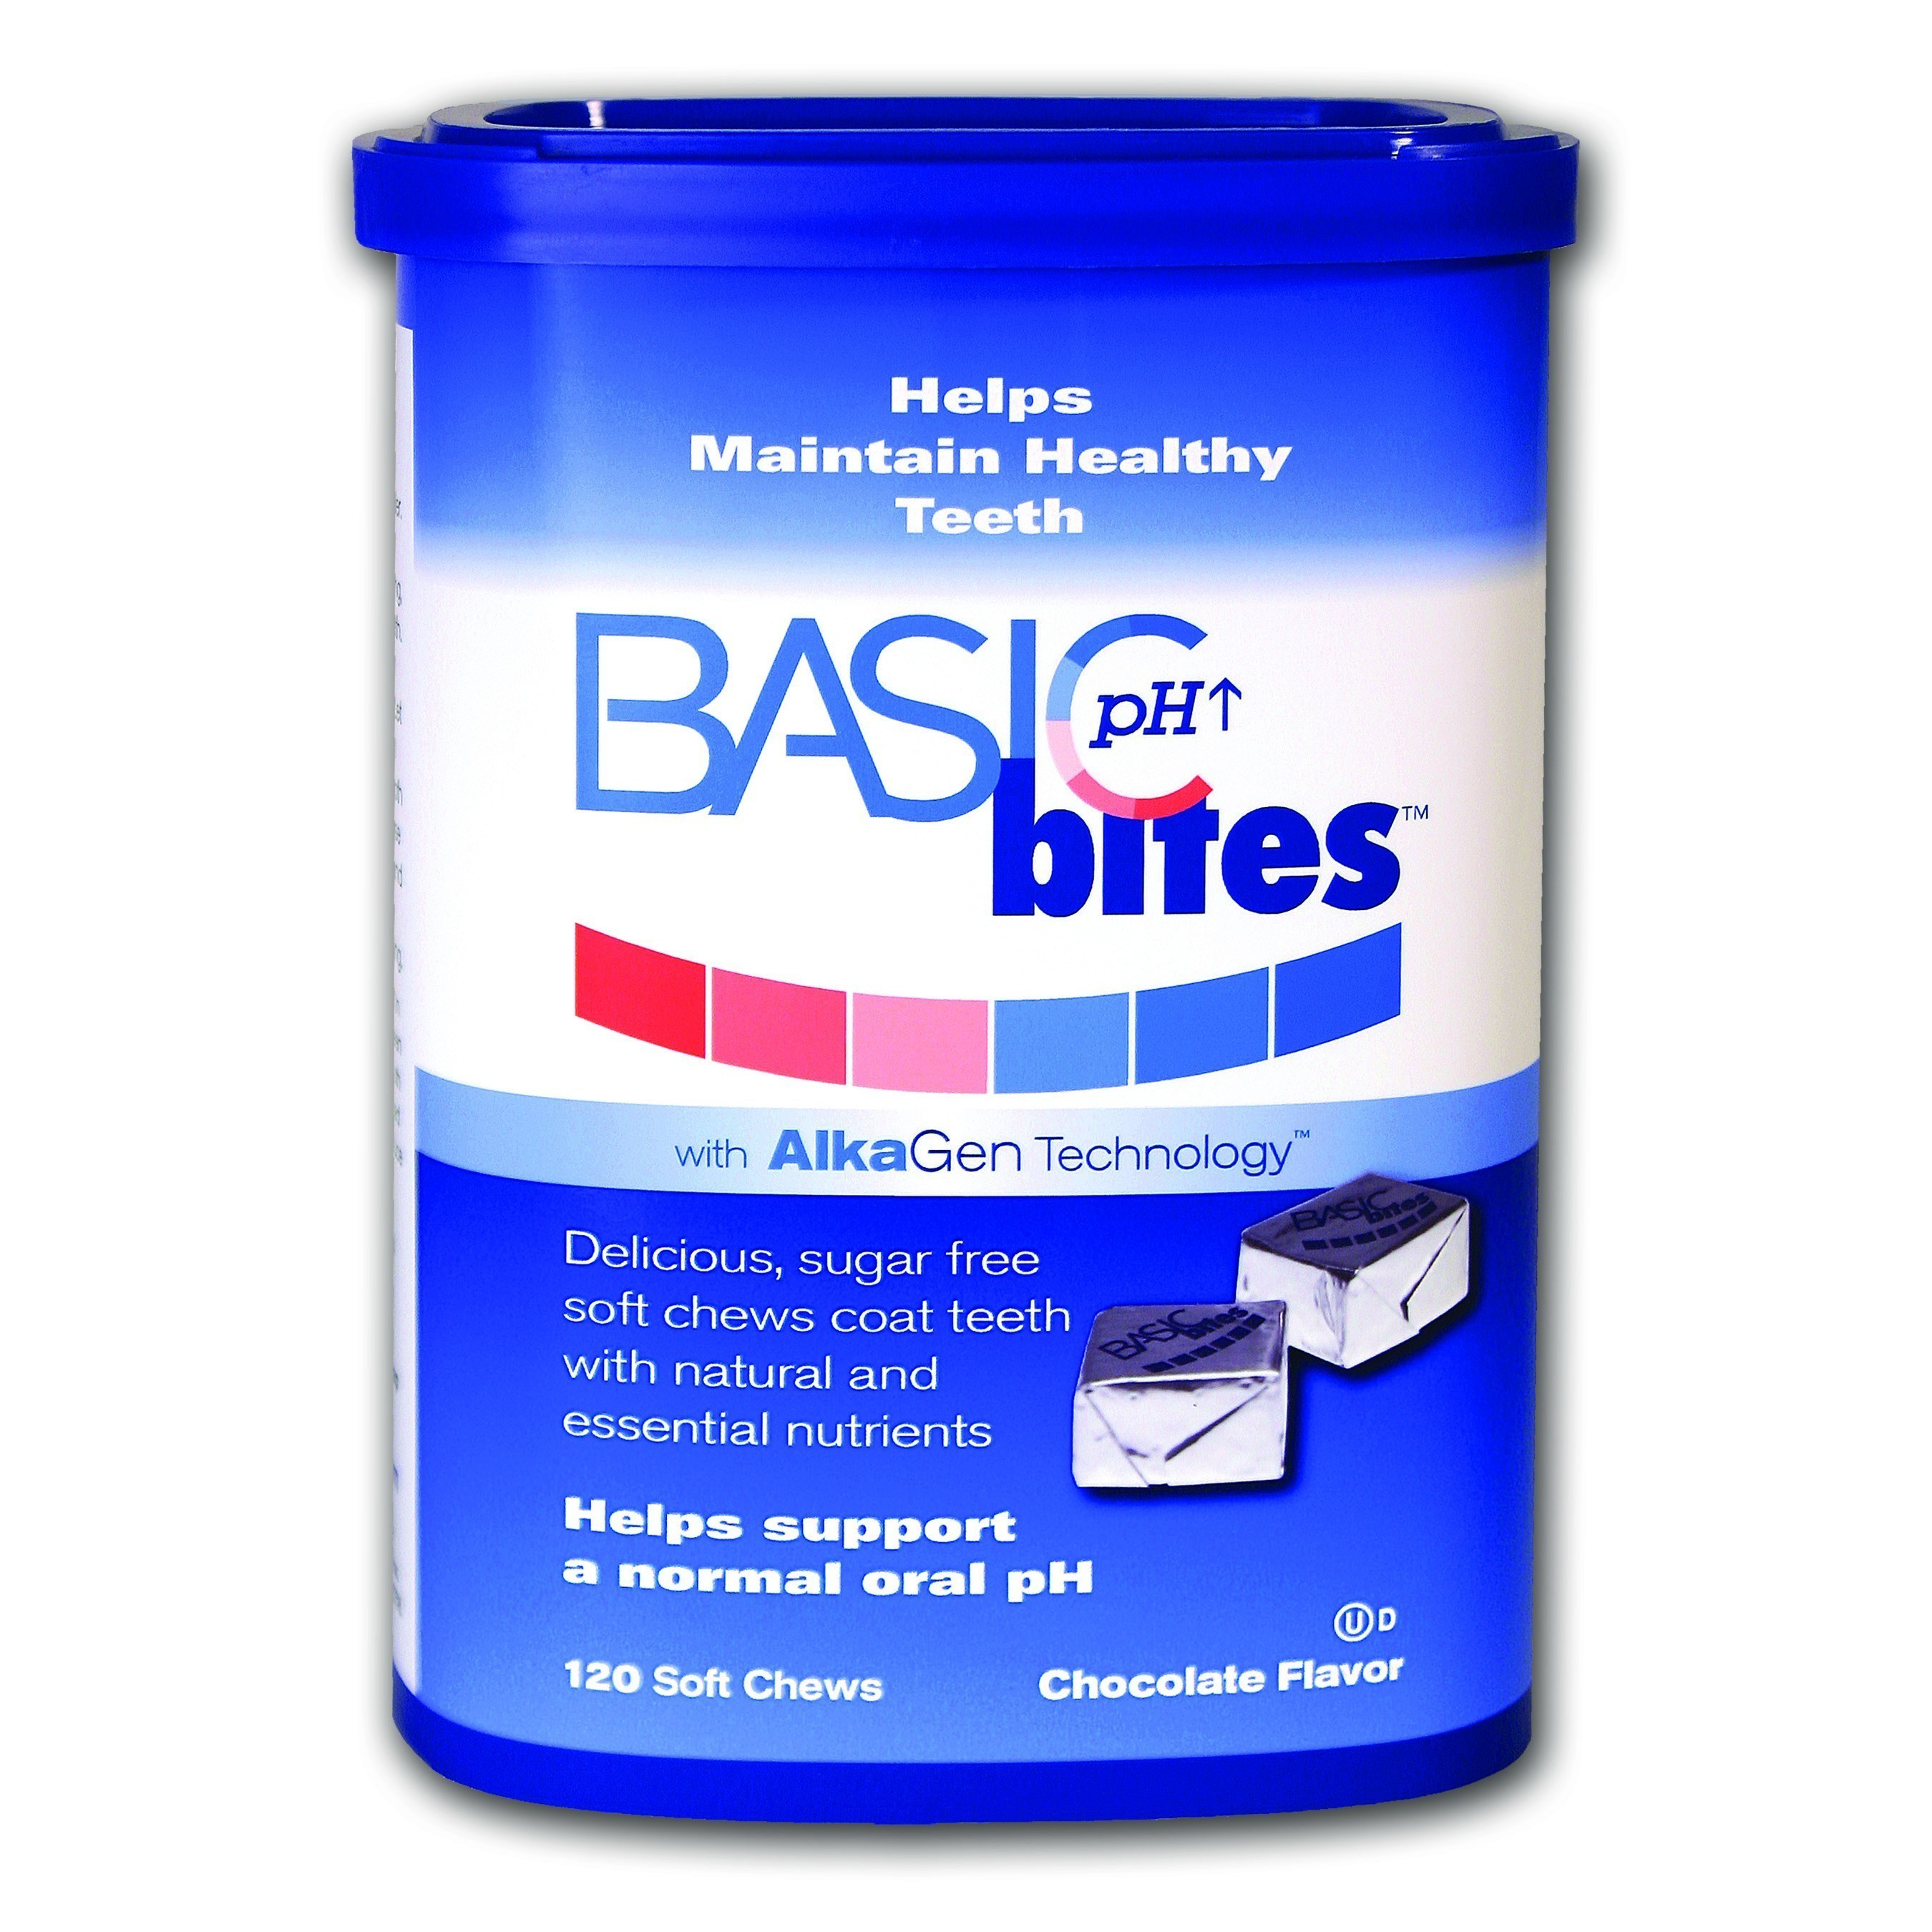 BasicBites: The Seriously Delicious Oral Care Breakthrough. 120ct. Soft Chew Carton